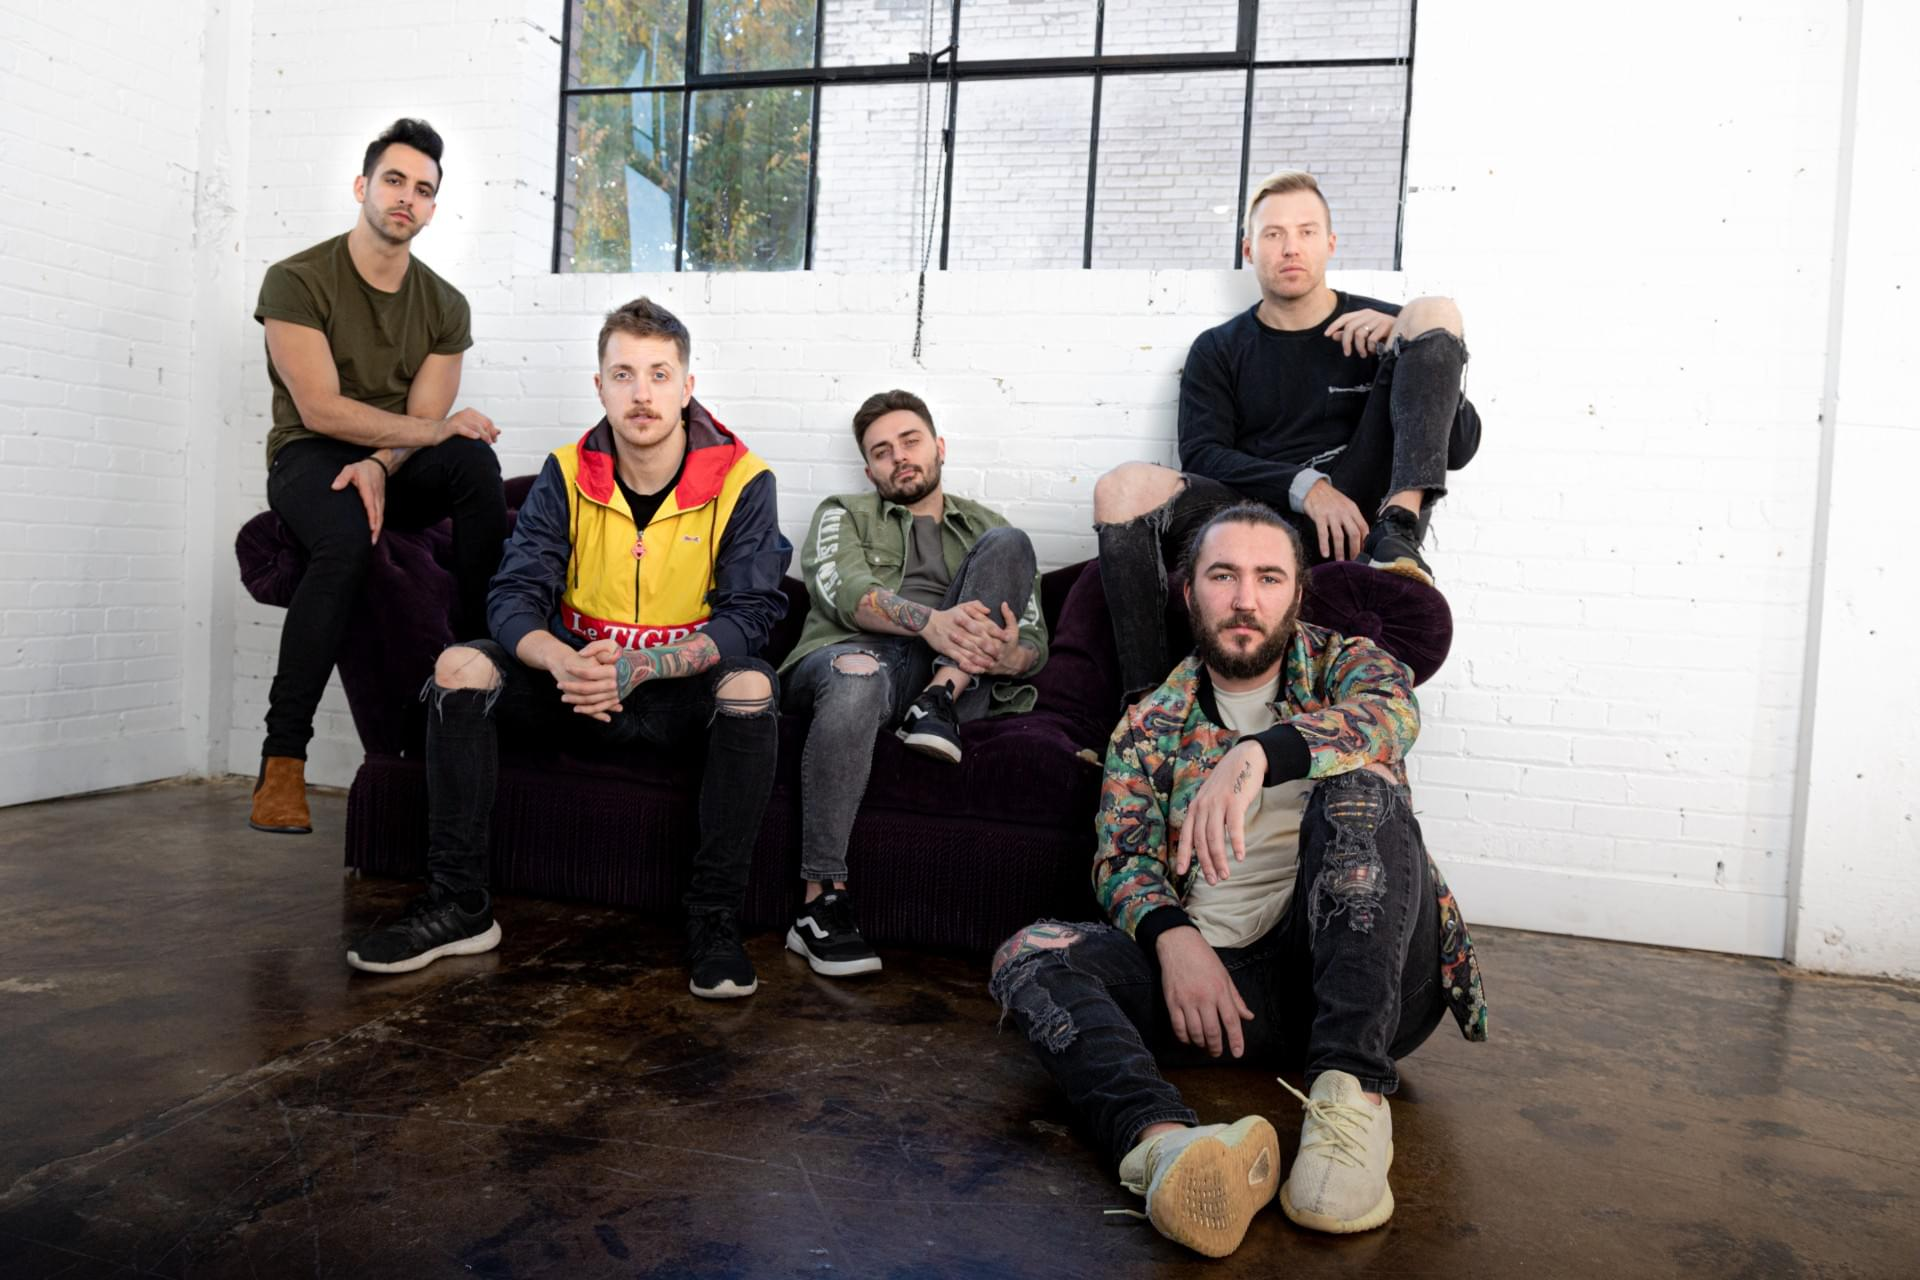 I Prevail Releases Official Music Video for 'Every Time You Leave' Featuring Delaney Jane